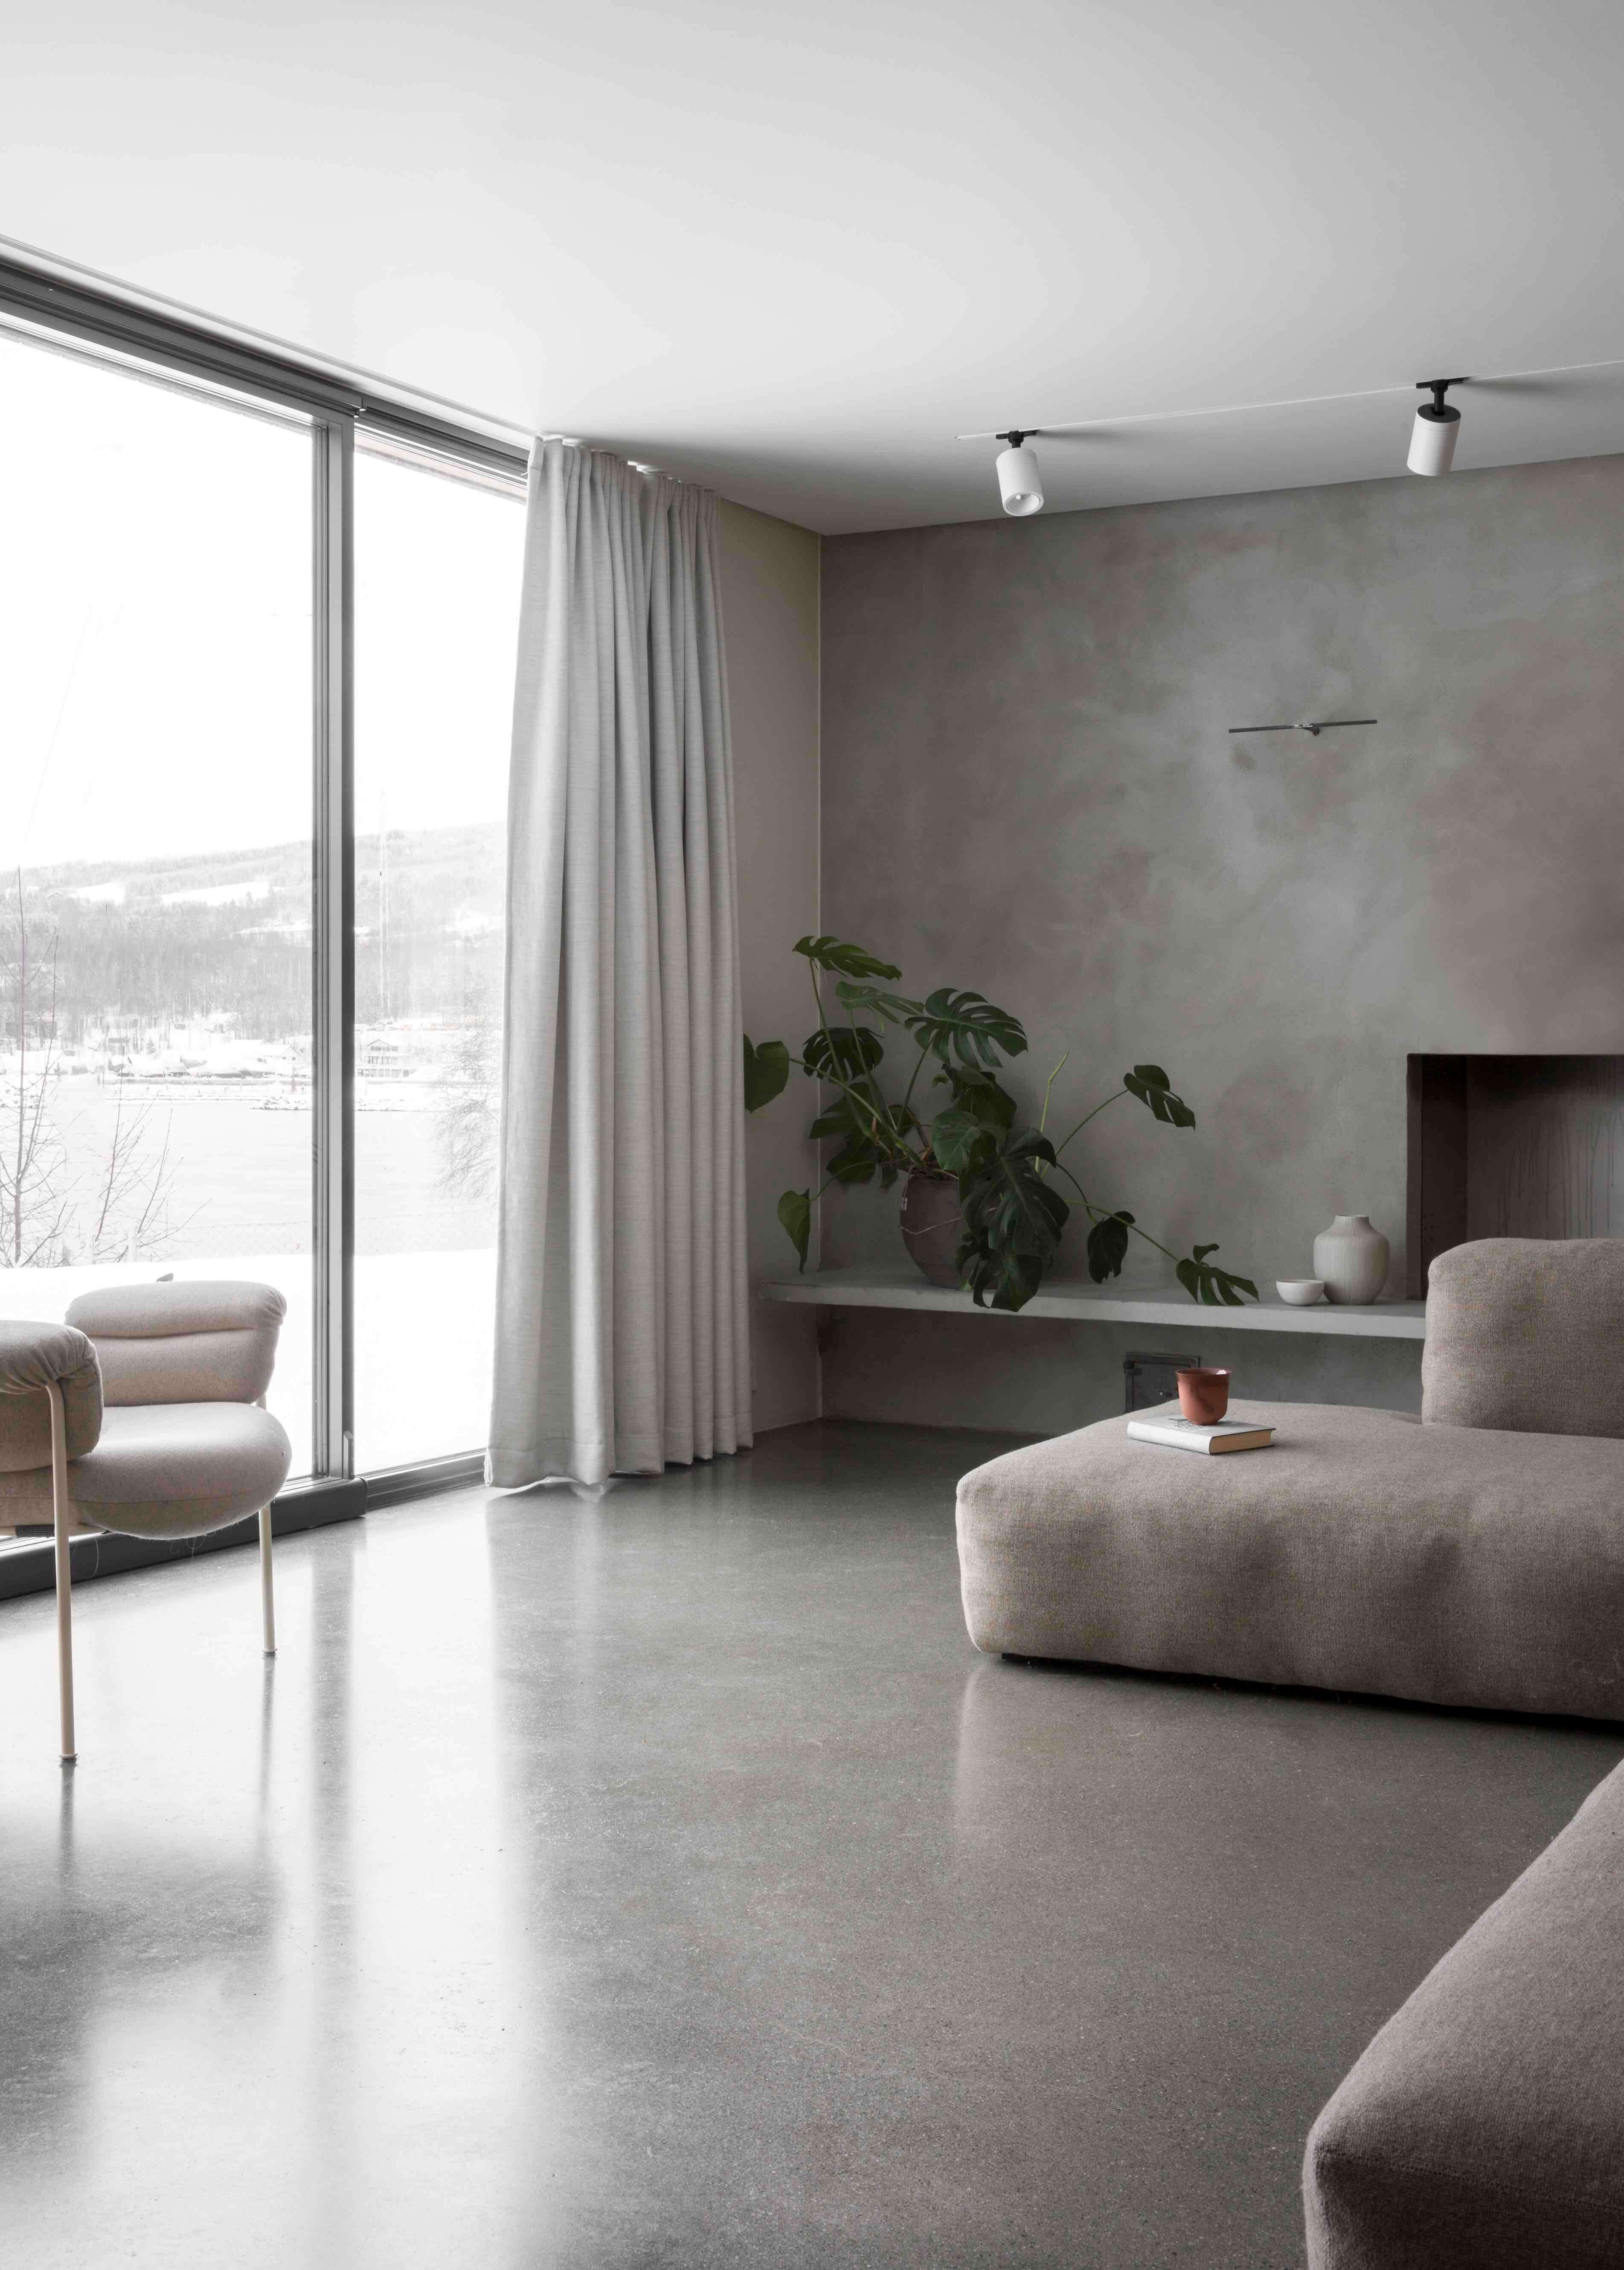 est living gjoevik house norm architects 14